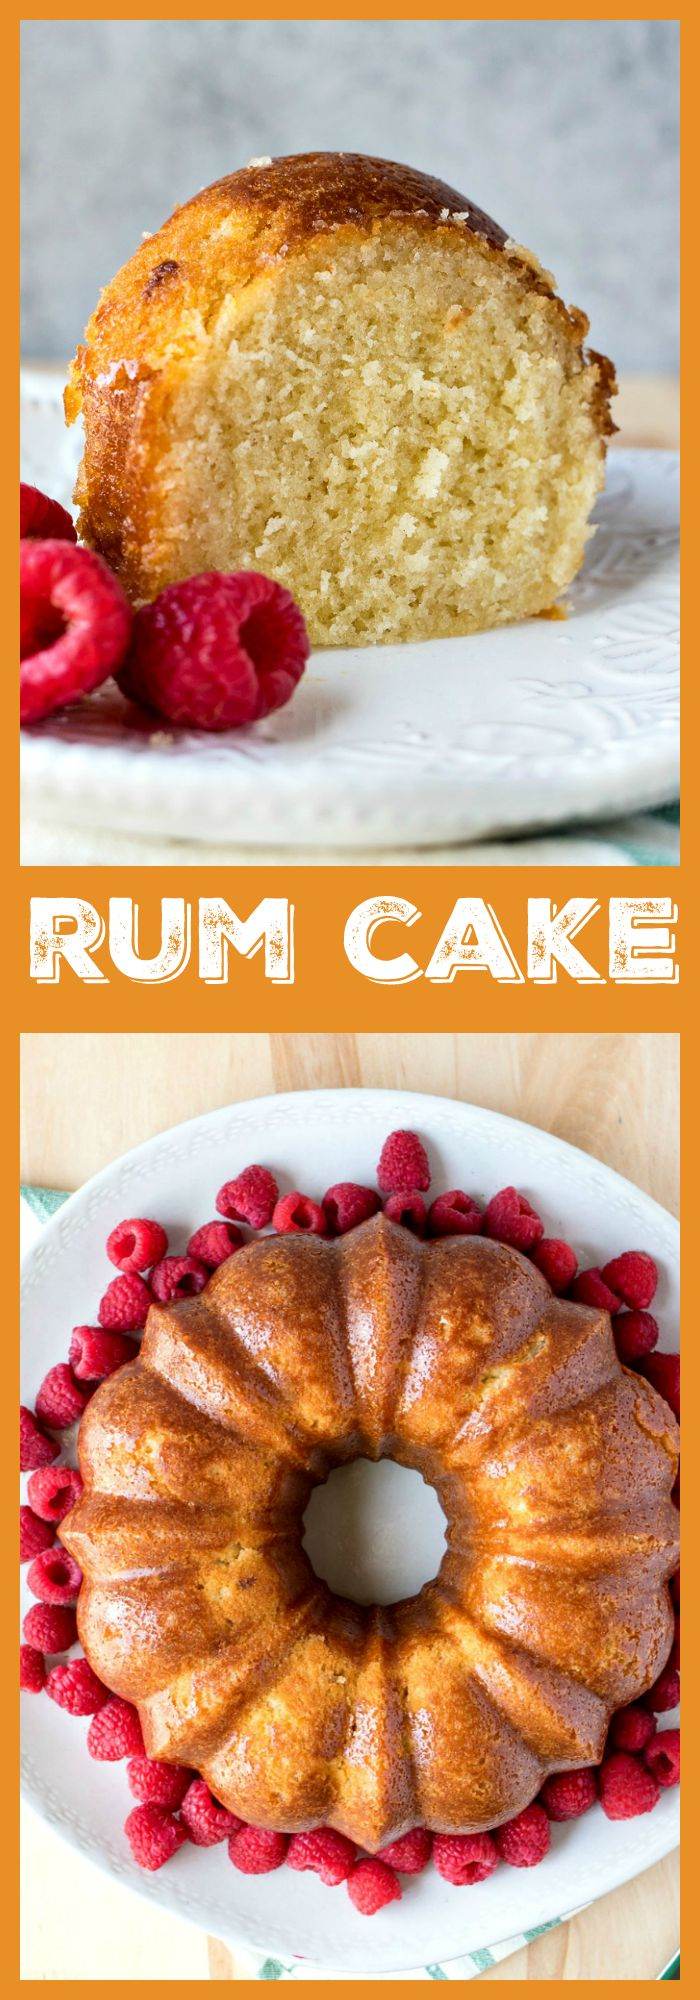 Rum Cake – A delicious bundt cake made from scratch and then soaked with a butter-rum syrup. Not for the faint of heart! #cake #recipe #rum #dessert #bundt